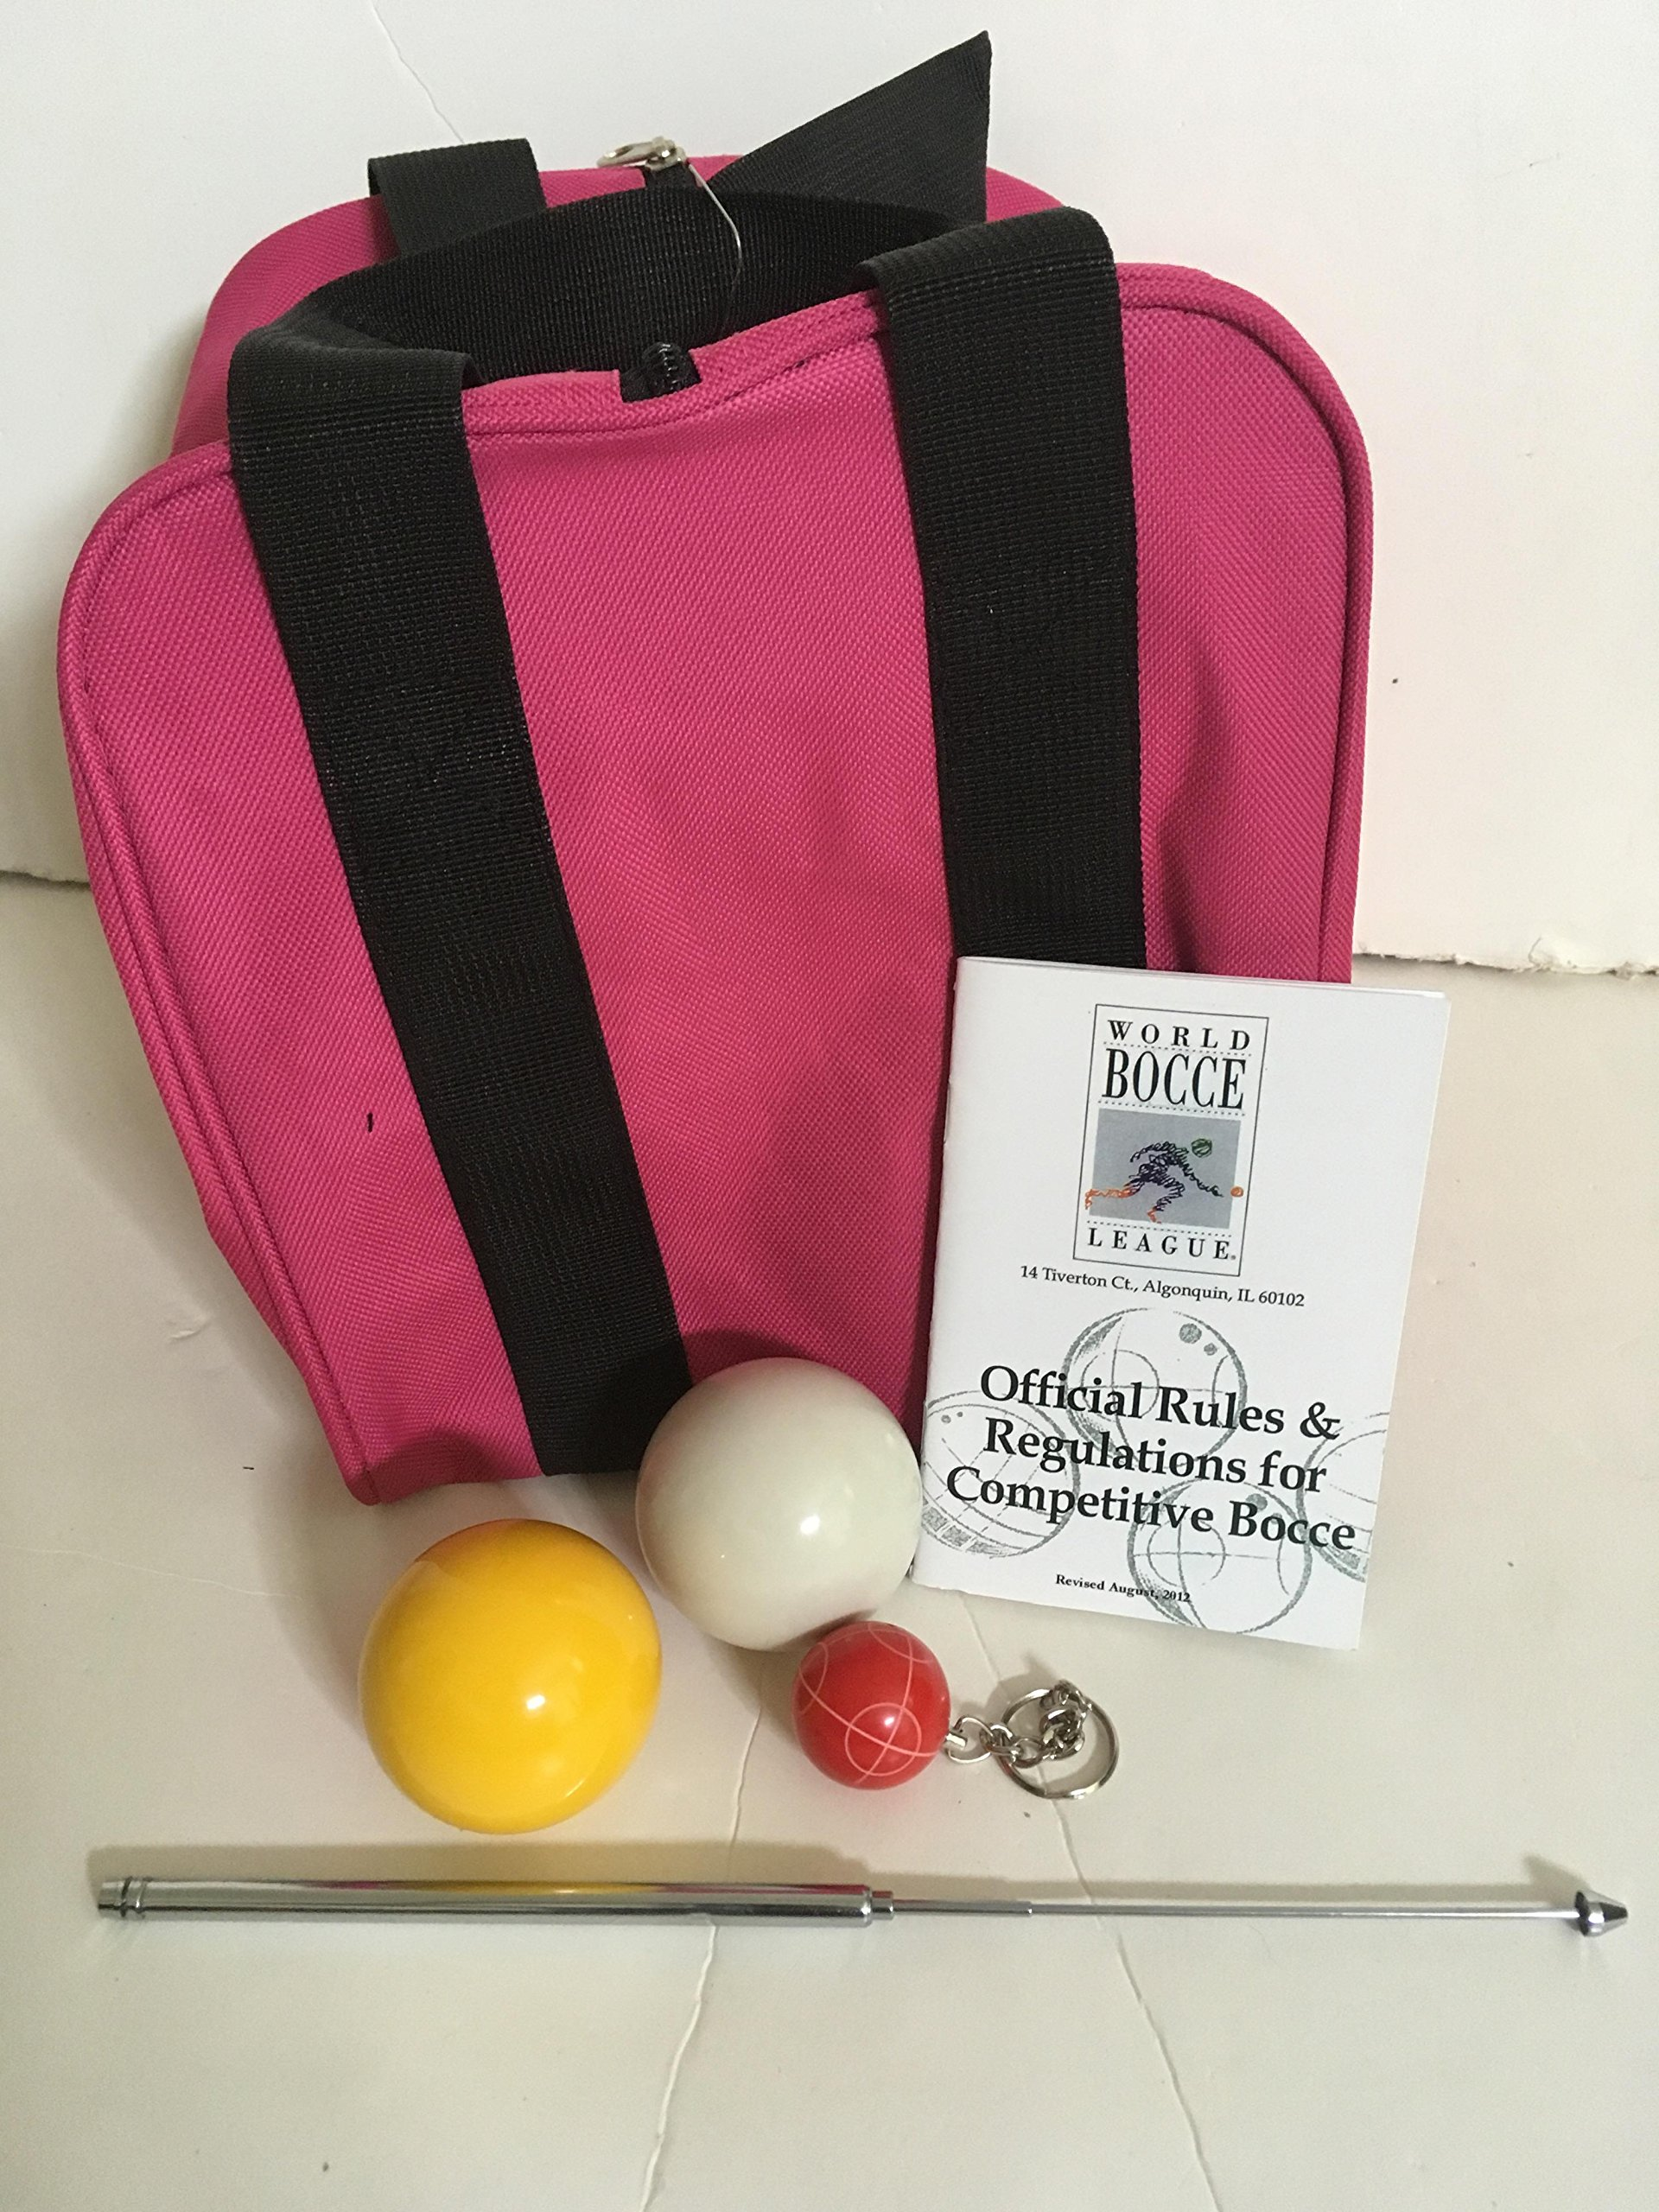 Unique Bocce Ball Accessories Package - Extra Heavy Duty Nylon Bocce Bag (Pink with Black Handles), yellow and white pallinas, Extendable Measuring Device, Rule Book and Keychain by BuyBocceBalls